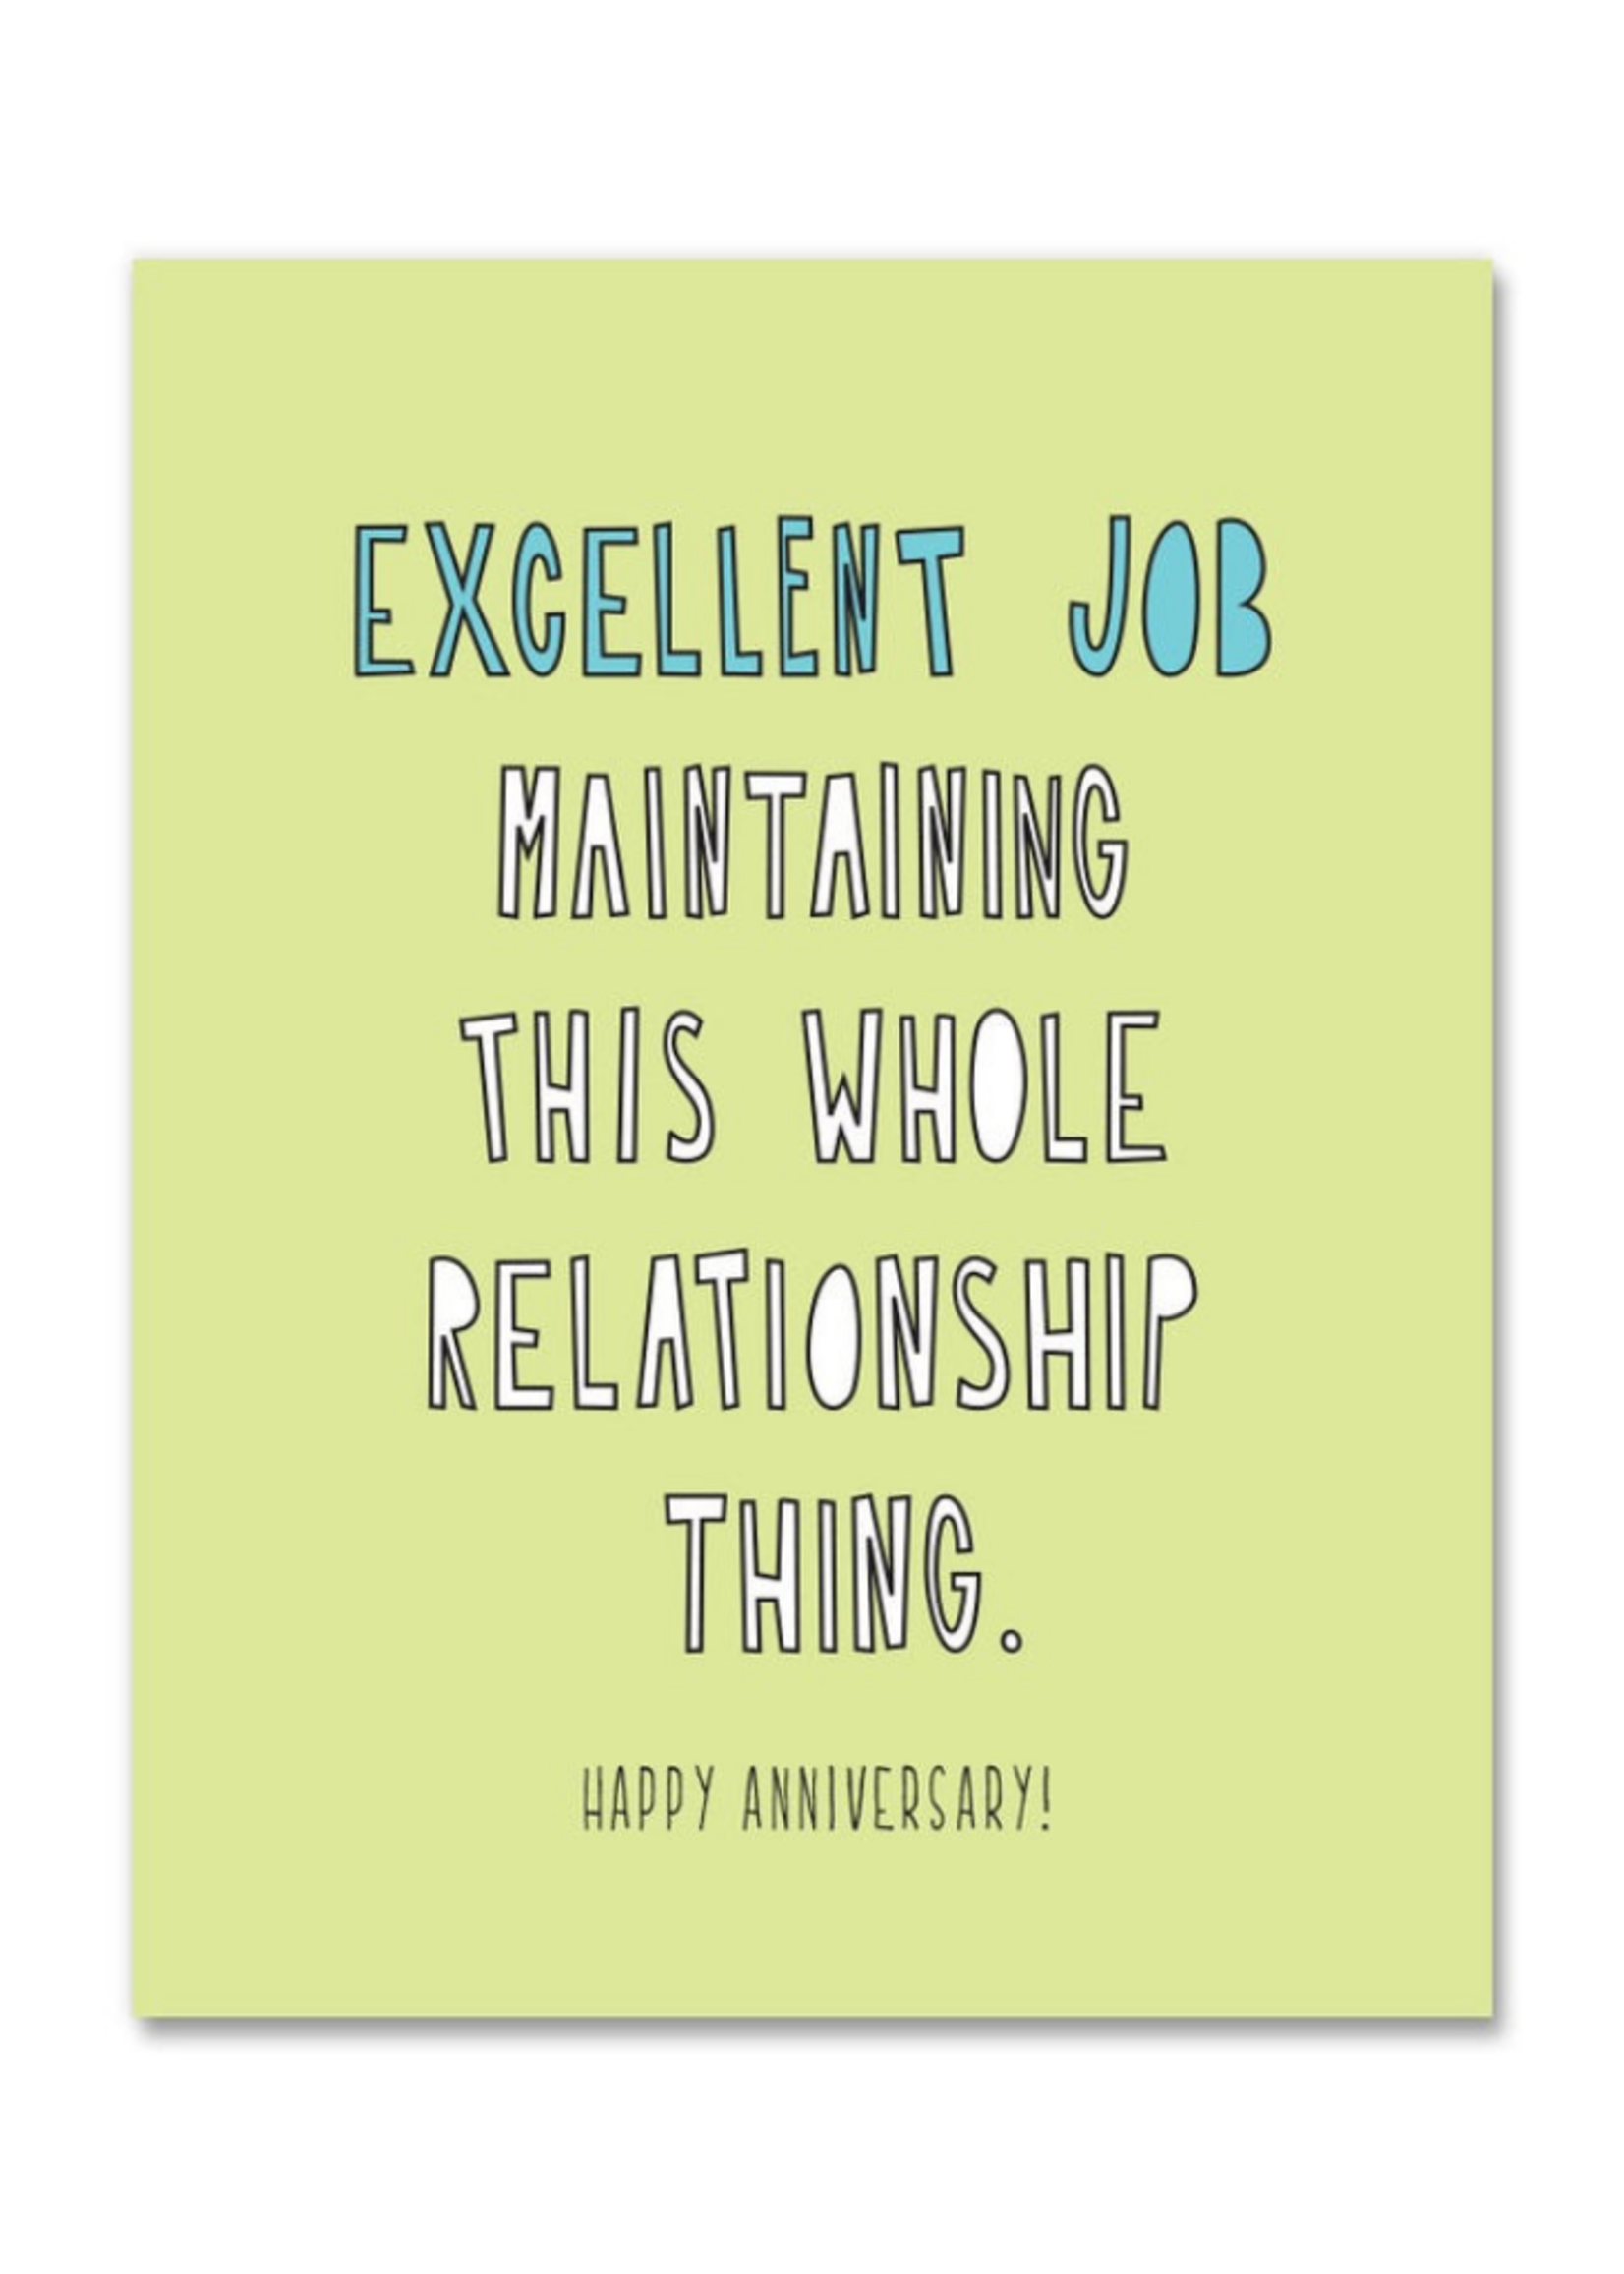 Near Modern Disaster This Relationship Thing Anniversary Card